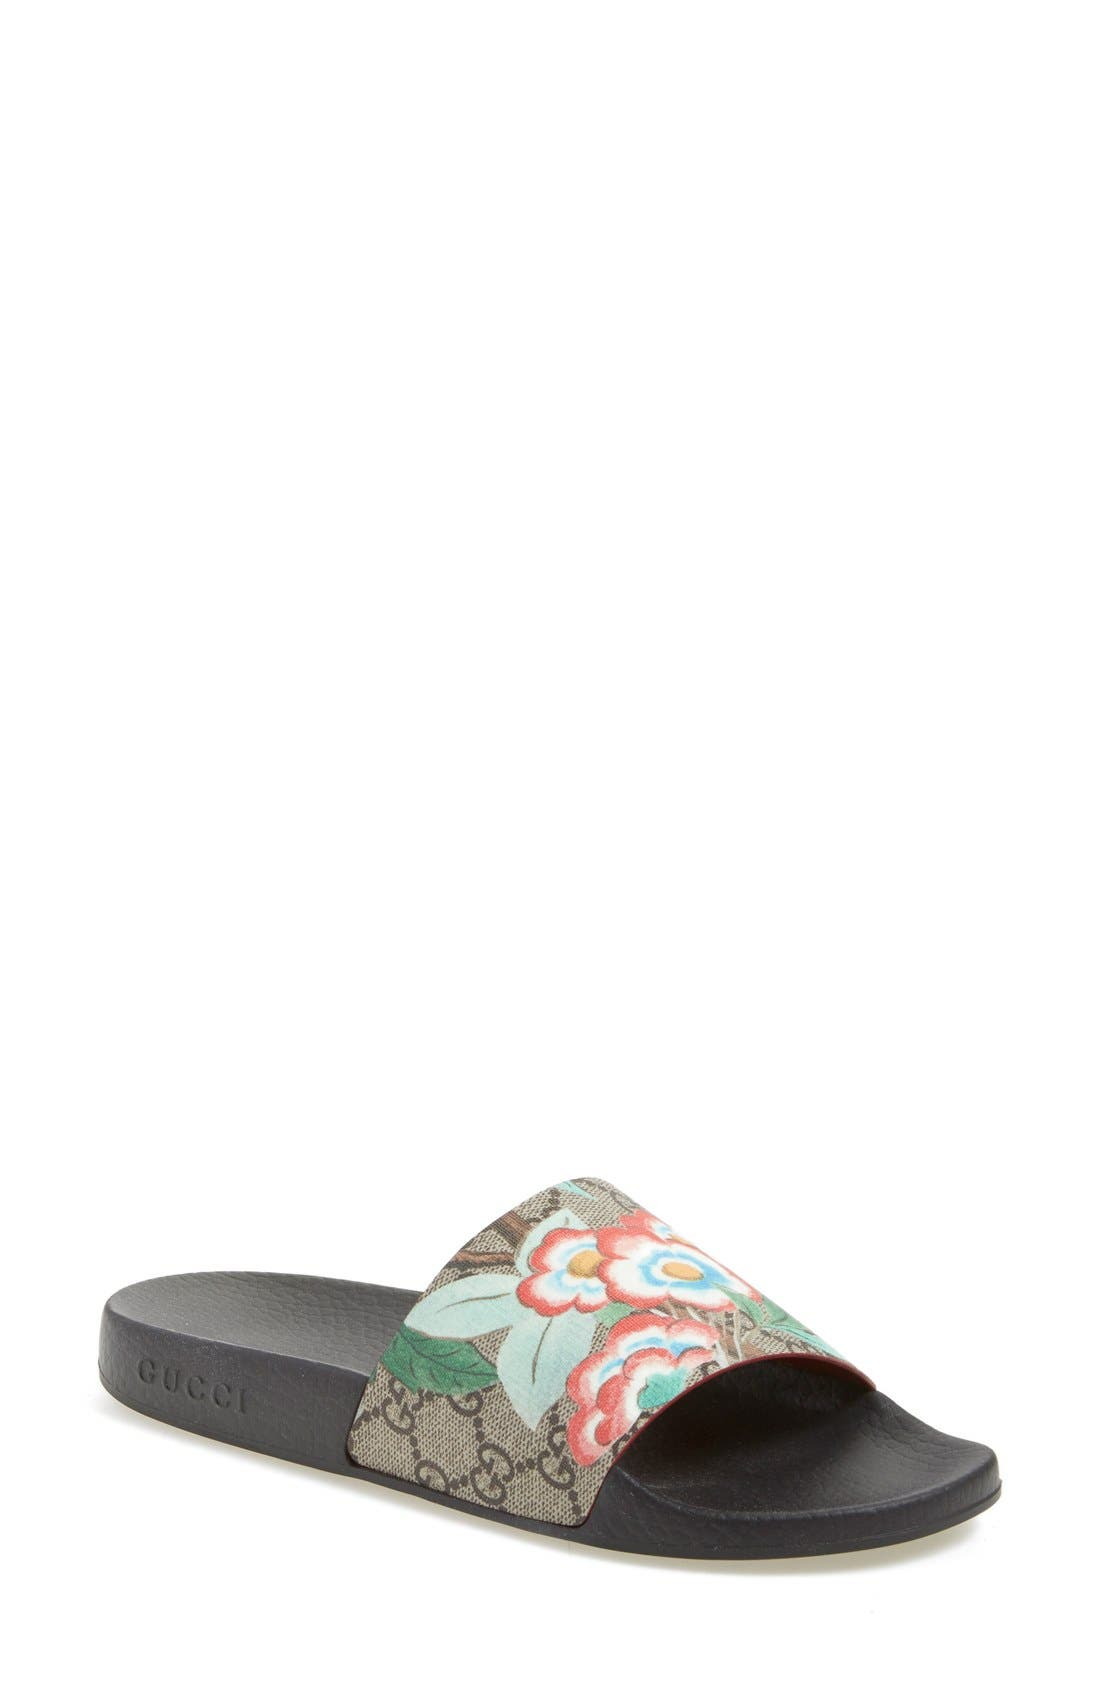 Gucci 'Pursuit' Floral Logo Slide Sandal (Women)